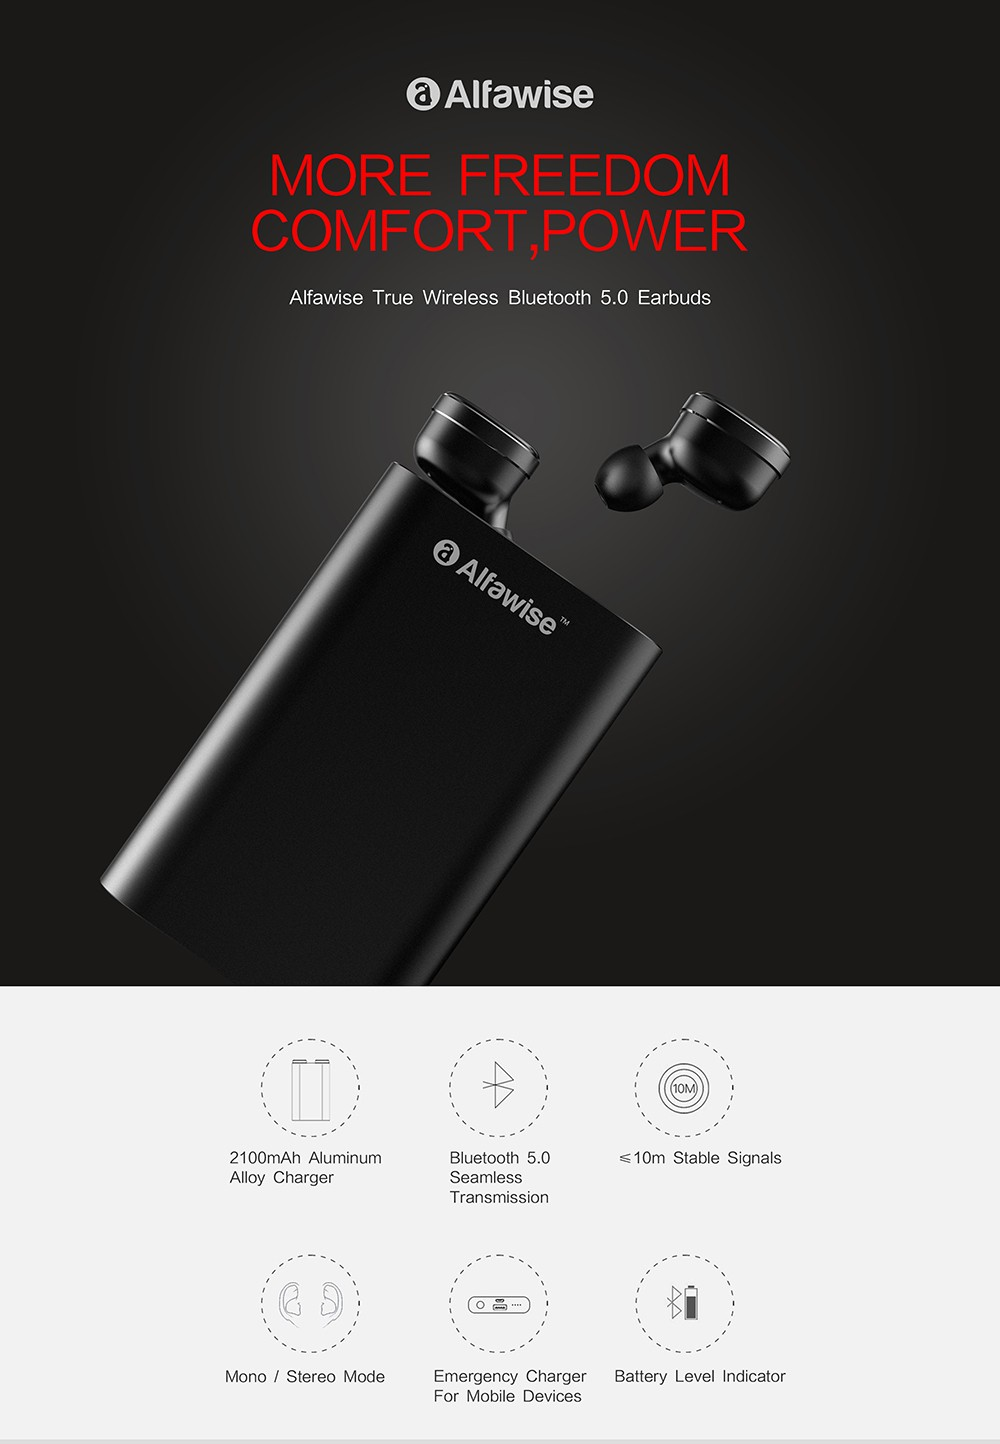 Alfawise Wireless Earbuds Mini Bluetooth In-ear Earphones Dual Stereo Sweatproof Built-in Mic with Charging Box- Graphite Black